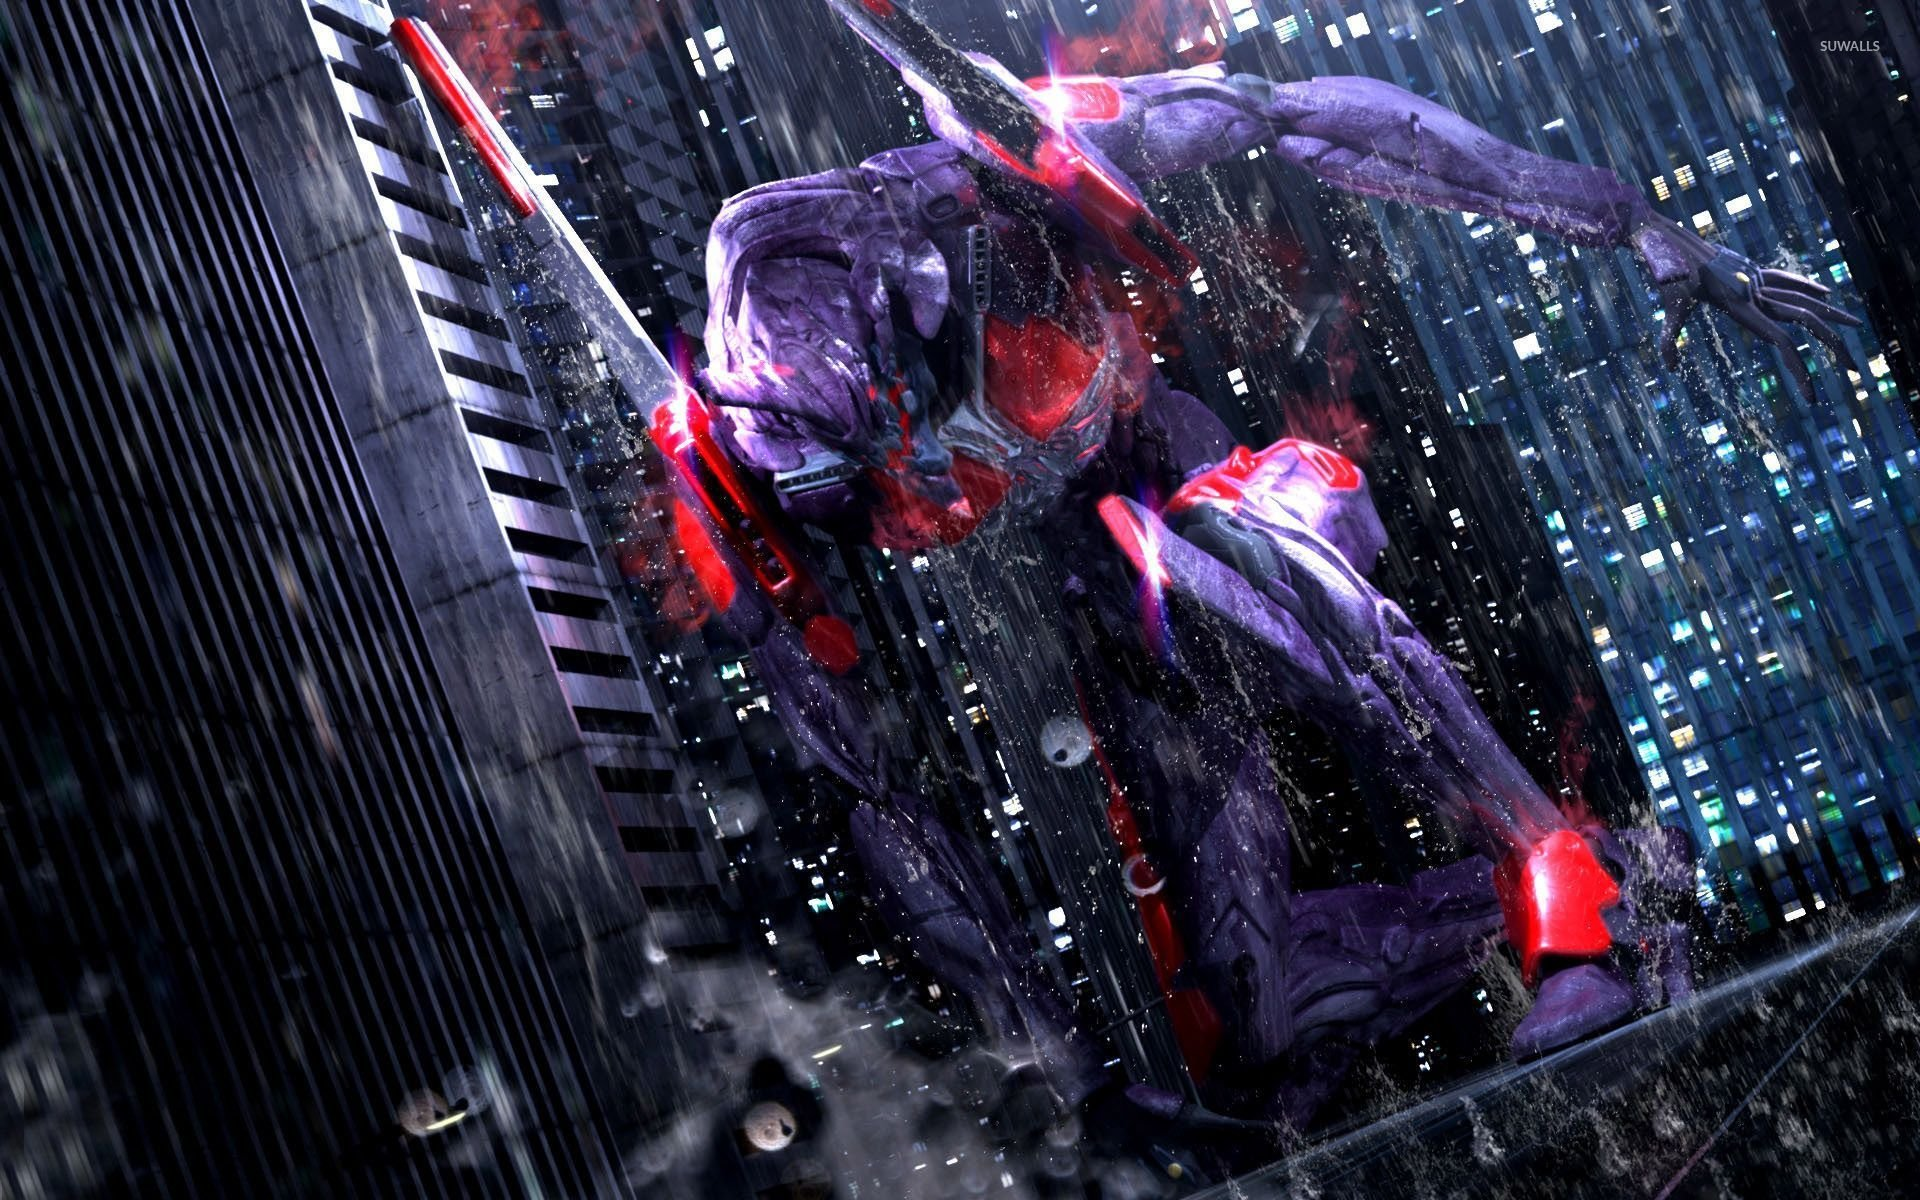 <b>Evangelion</b> Tribute Eva Unit 01 by pierreloyvet on DeviantArt